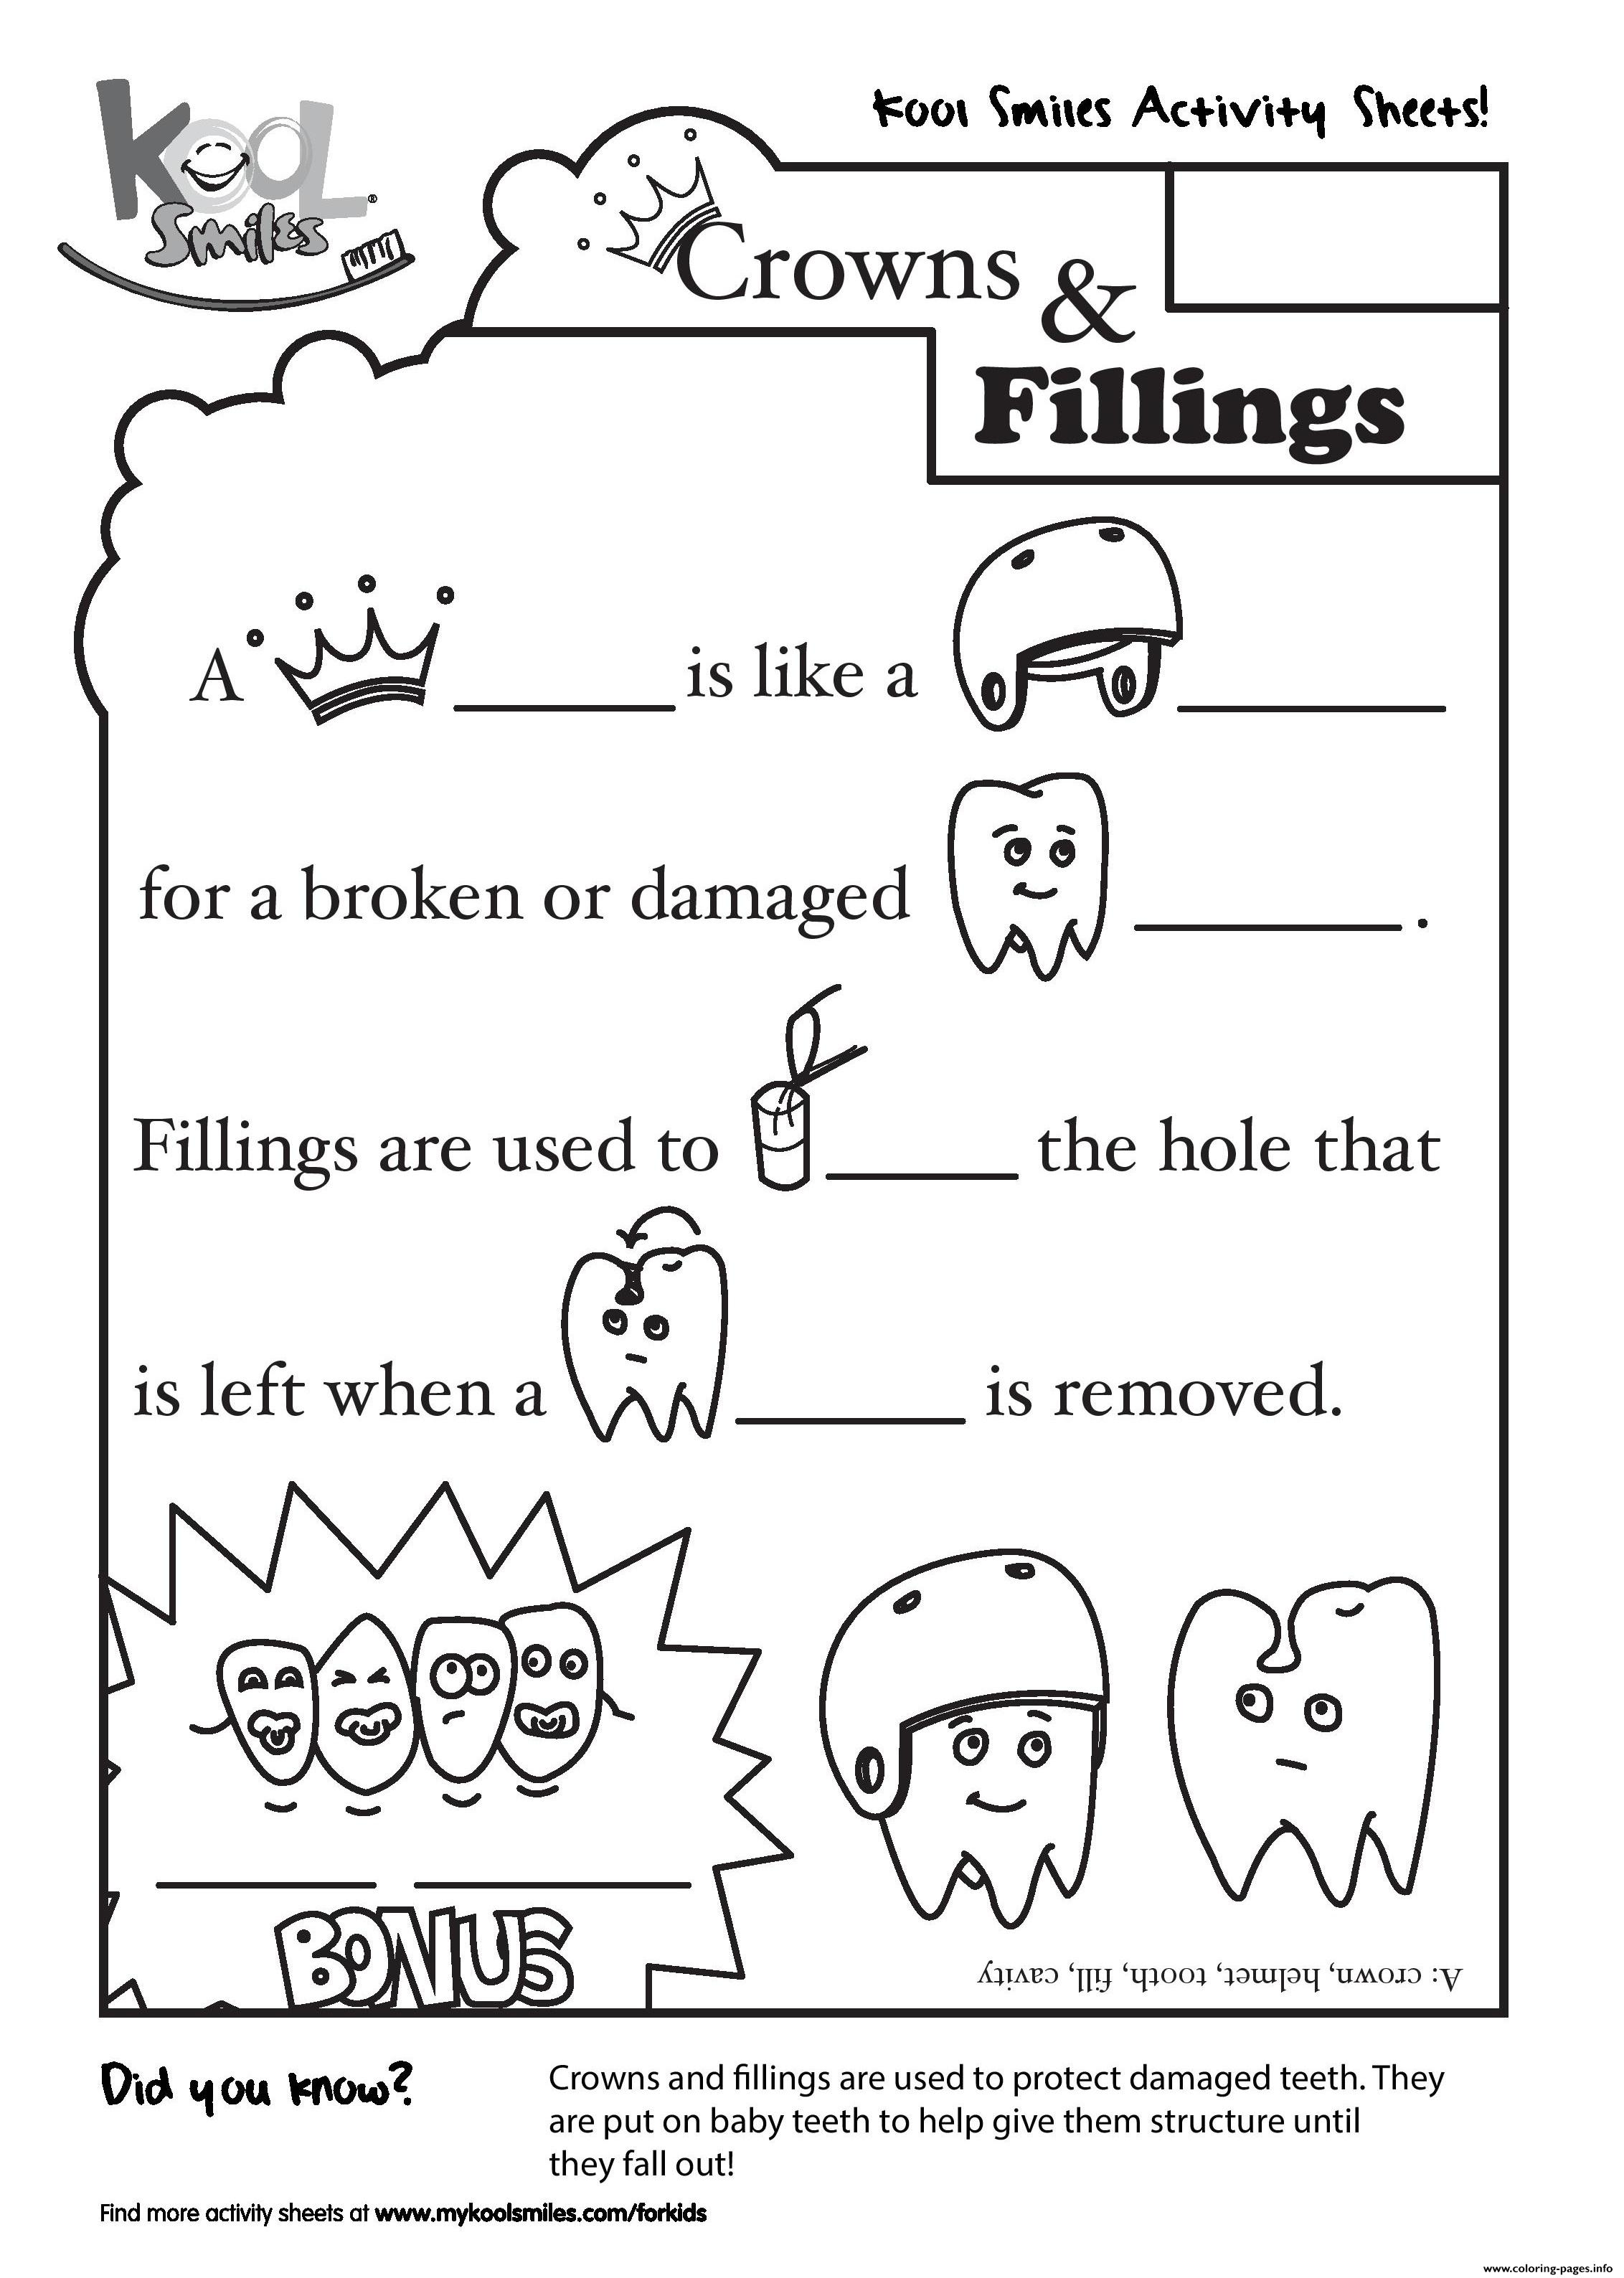 kool coloring pages Kool Smiles Crowns And Fillings Activity Sheet Coloring Pages  kool coloring pages